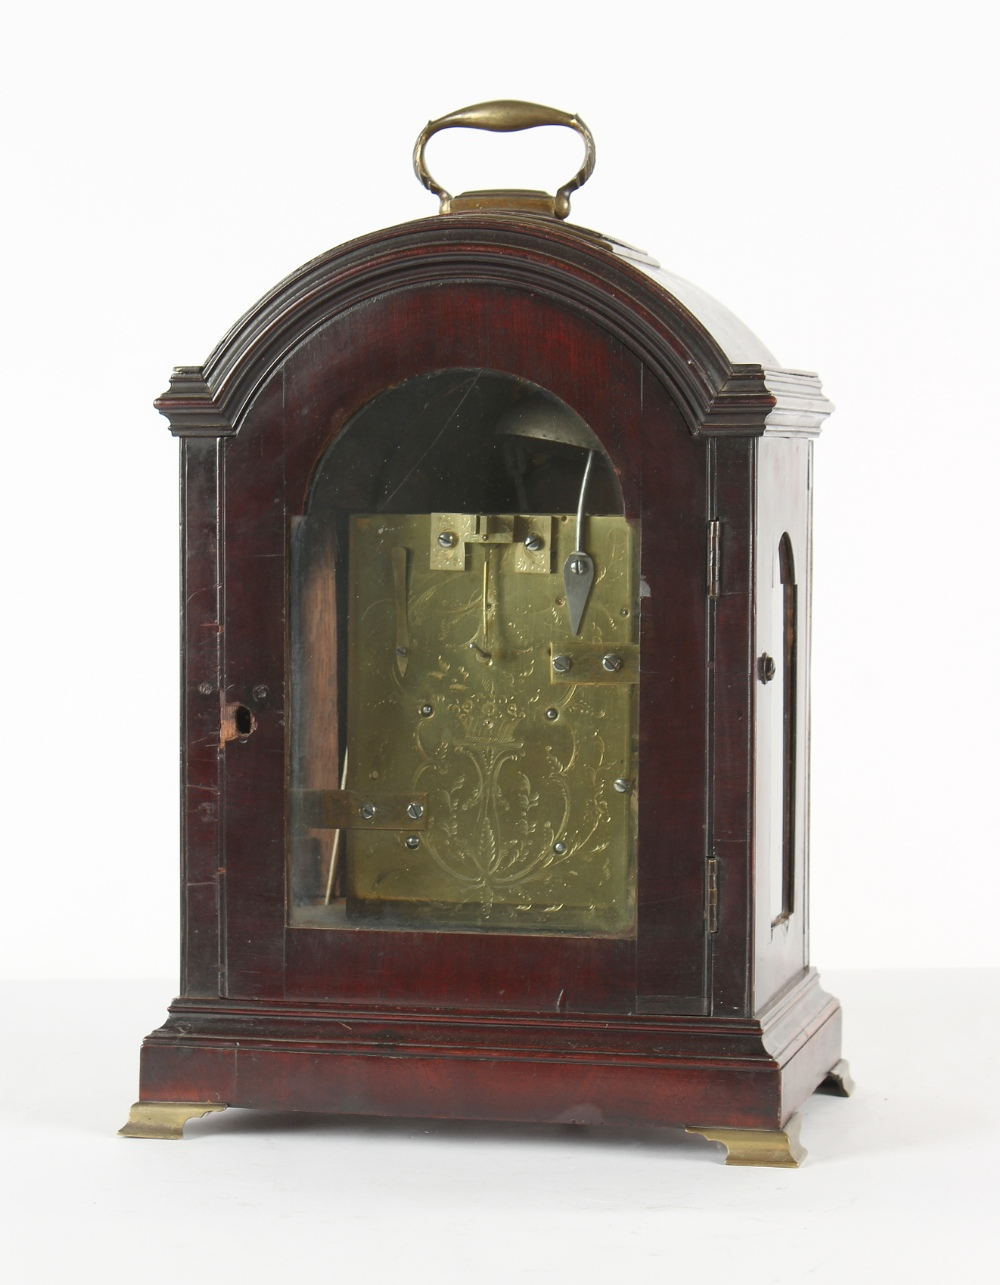 The Henry & Tricia Byrom Collection - William Harris, Chippenham, a mahogany table clock, circa - Image 3 of 3